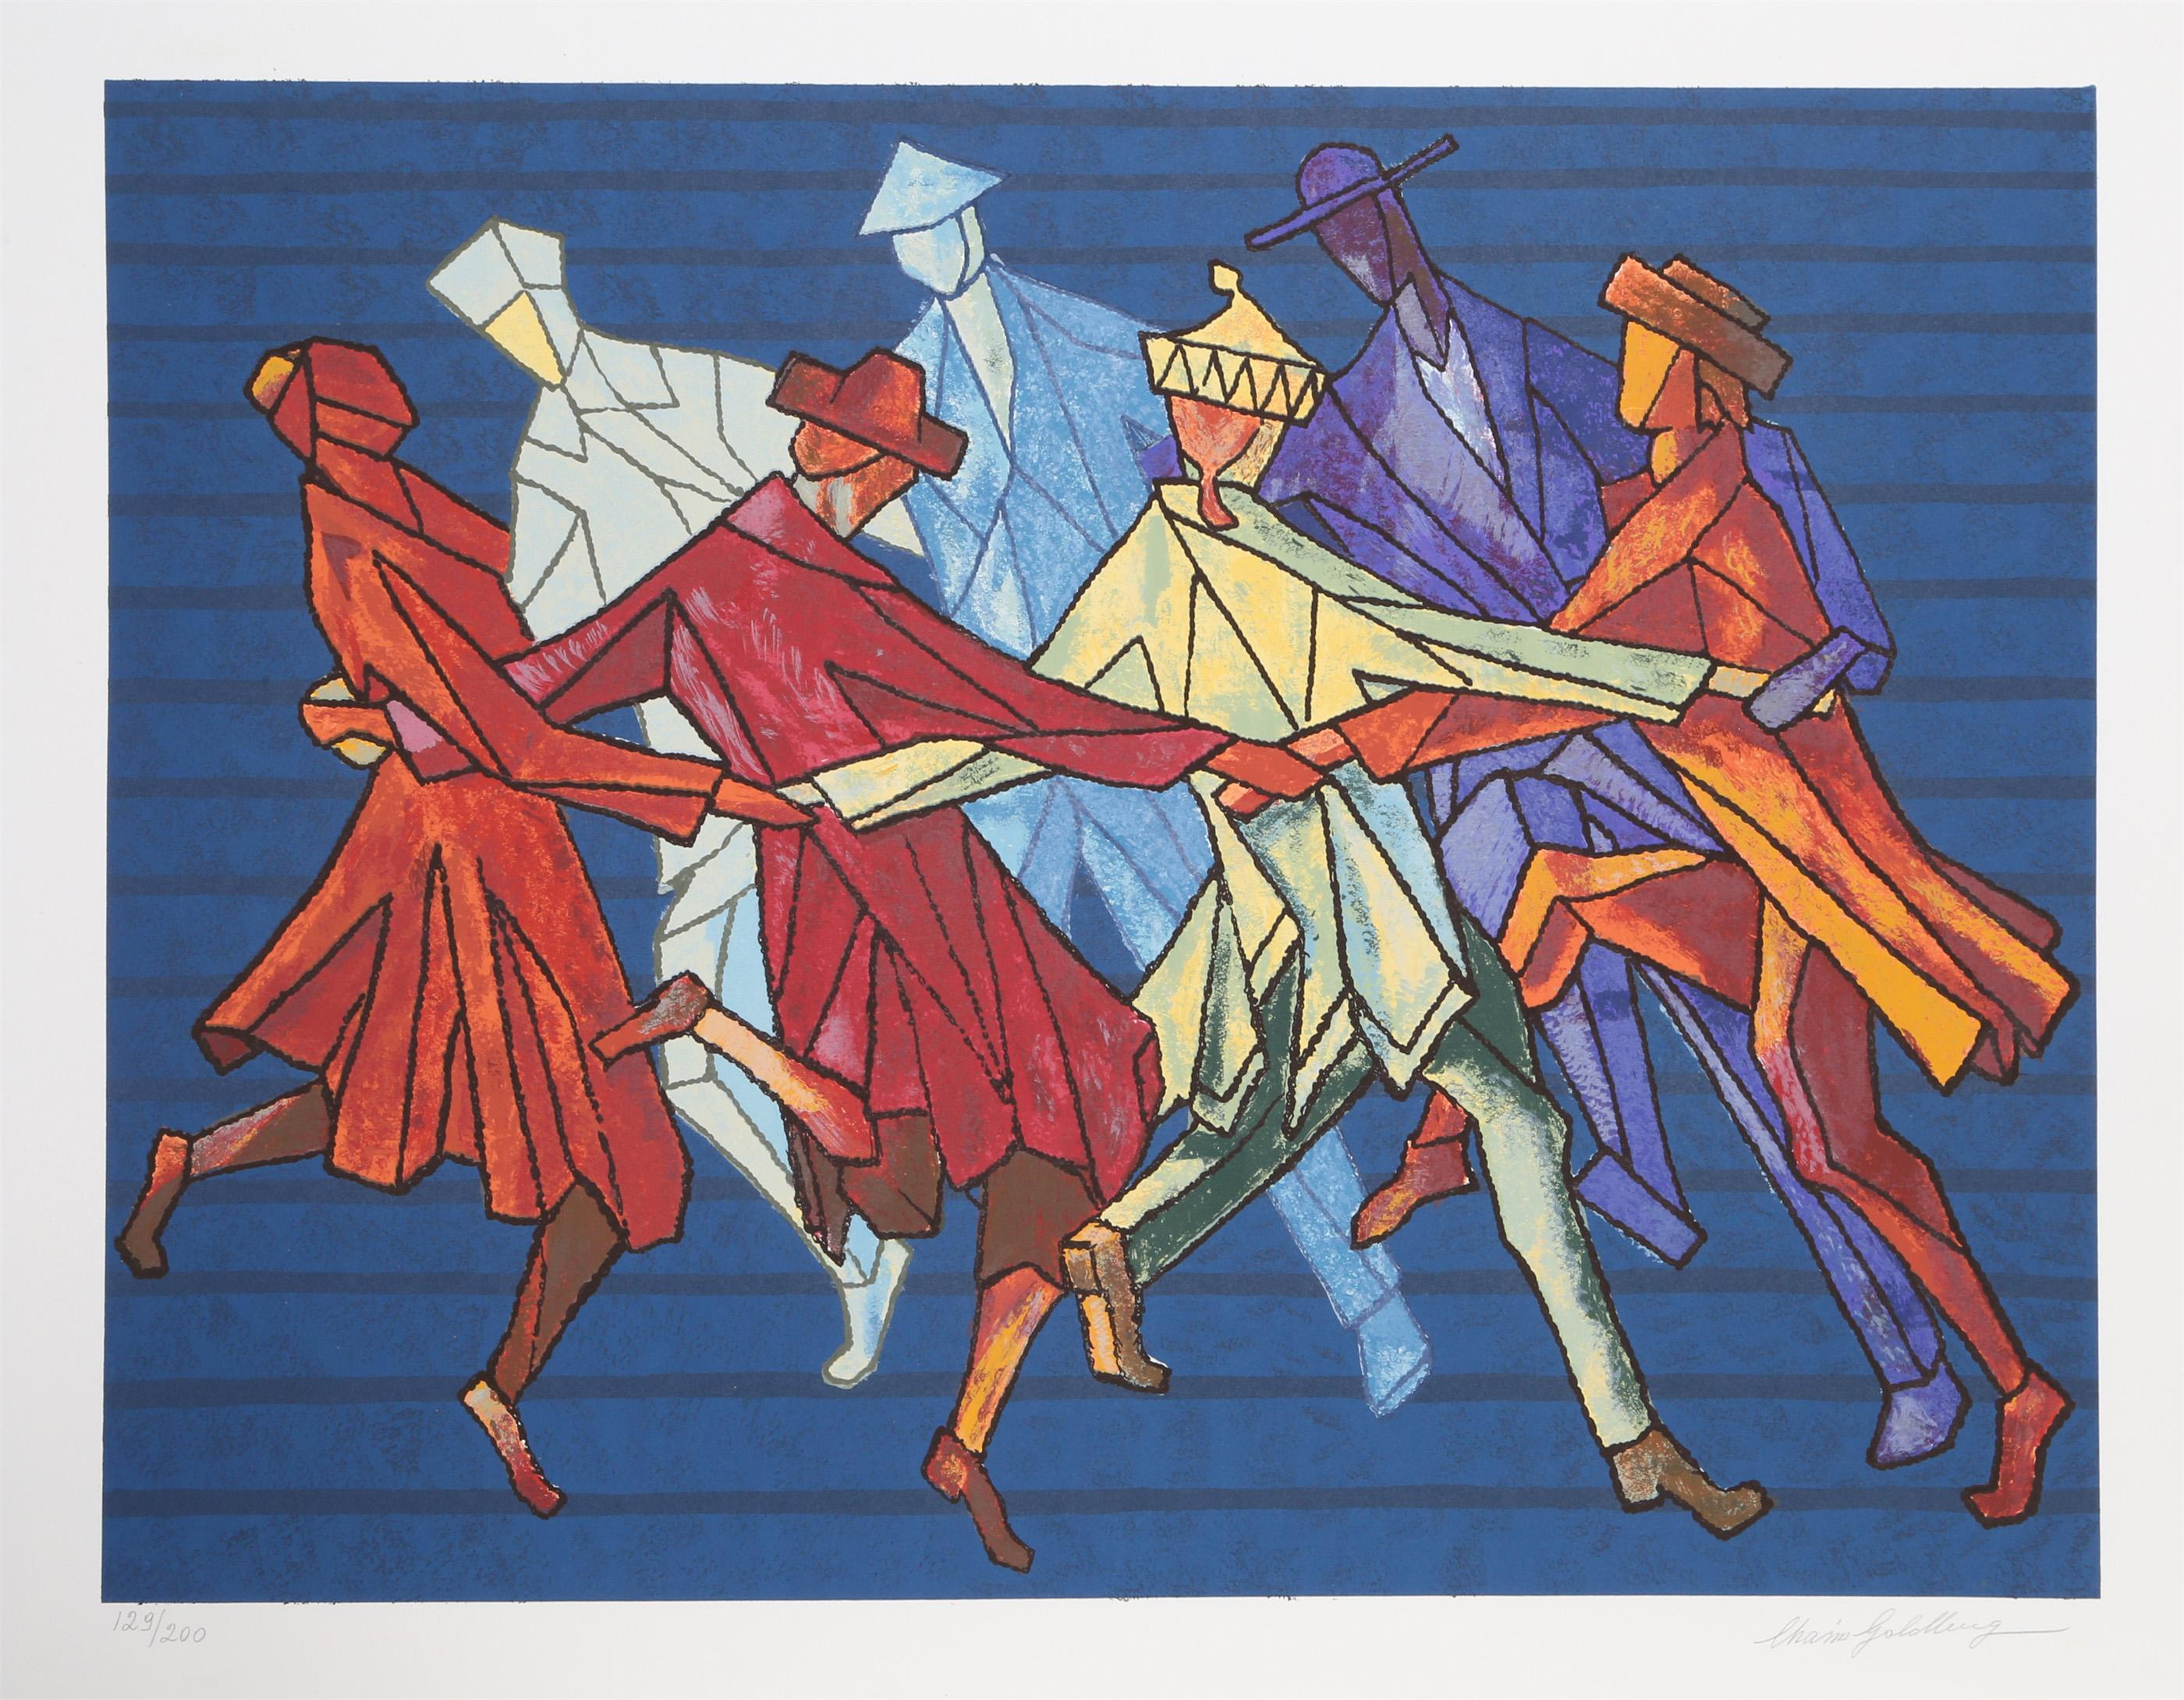 CHAIM GOLDBERG, THE HORAH DANCE, LITHOGRAPH ON ARCHES PAPER